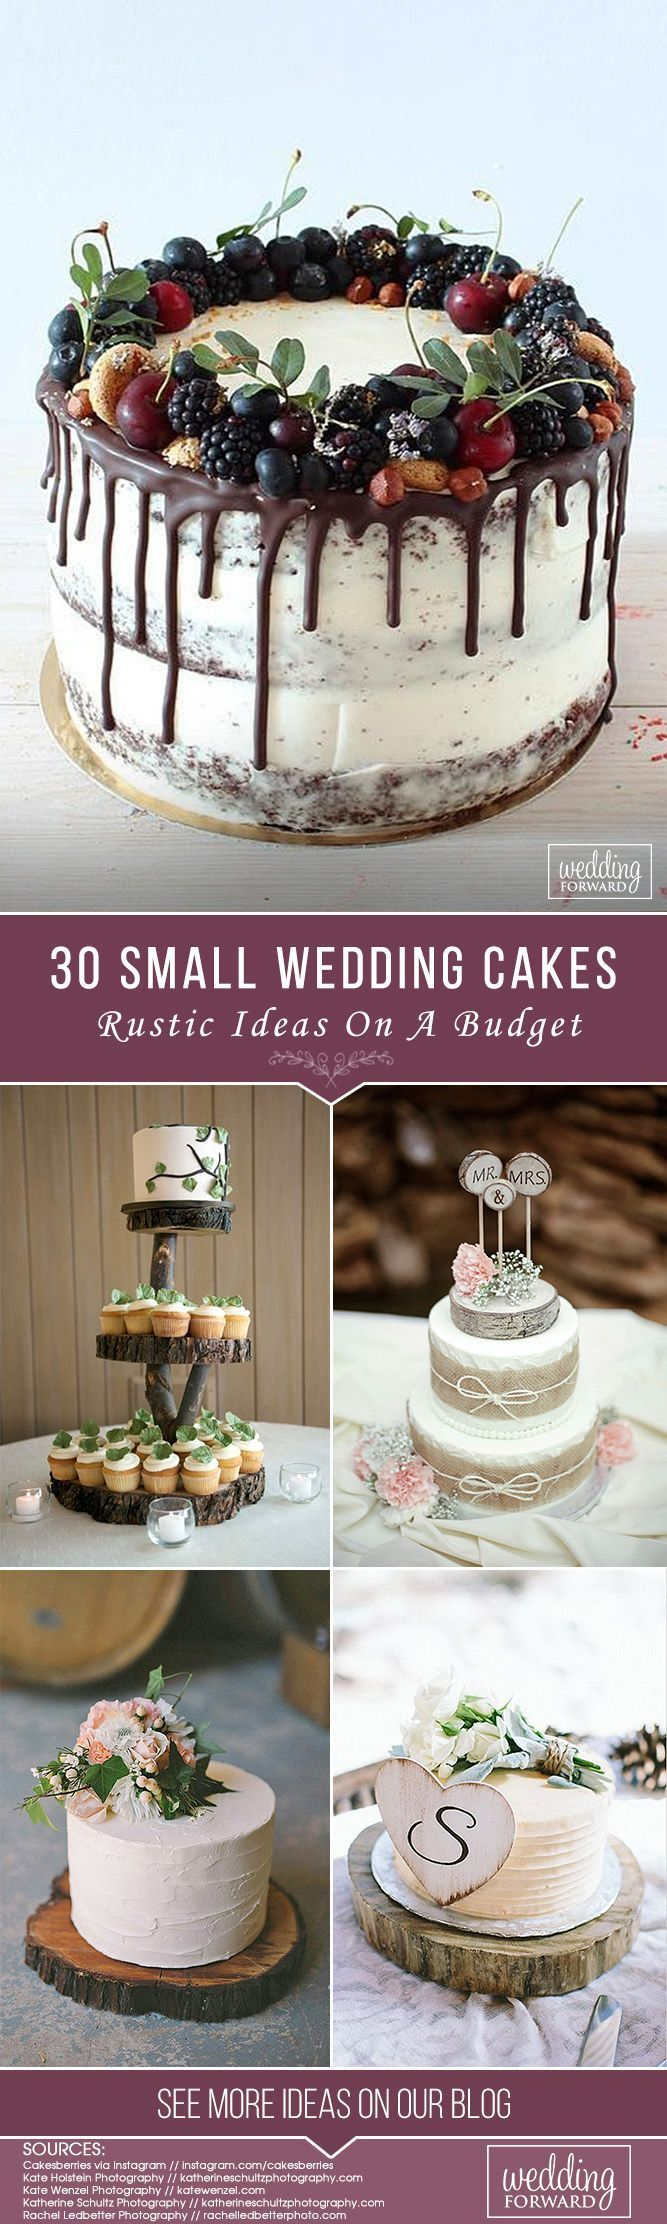 small rustic wedding cakes on a budget see more